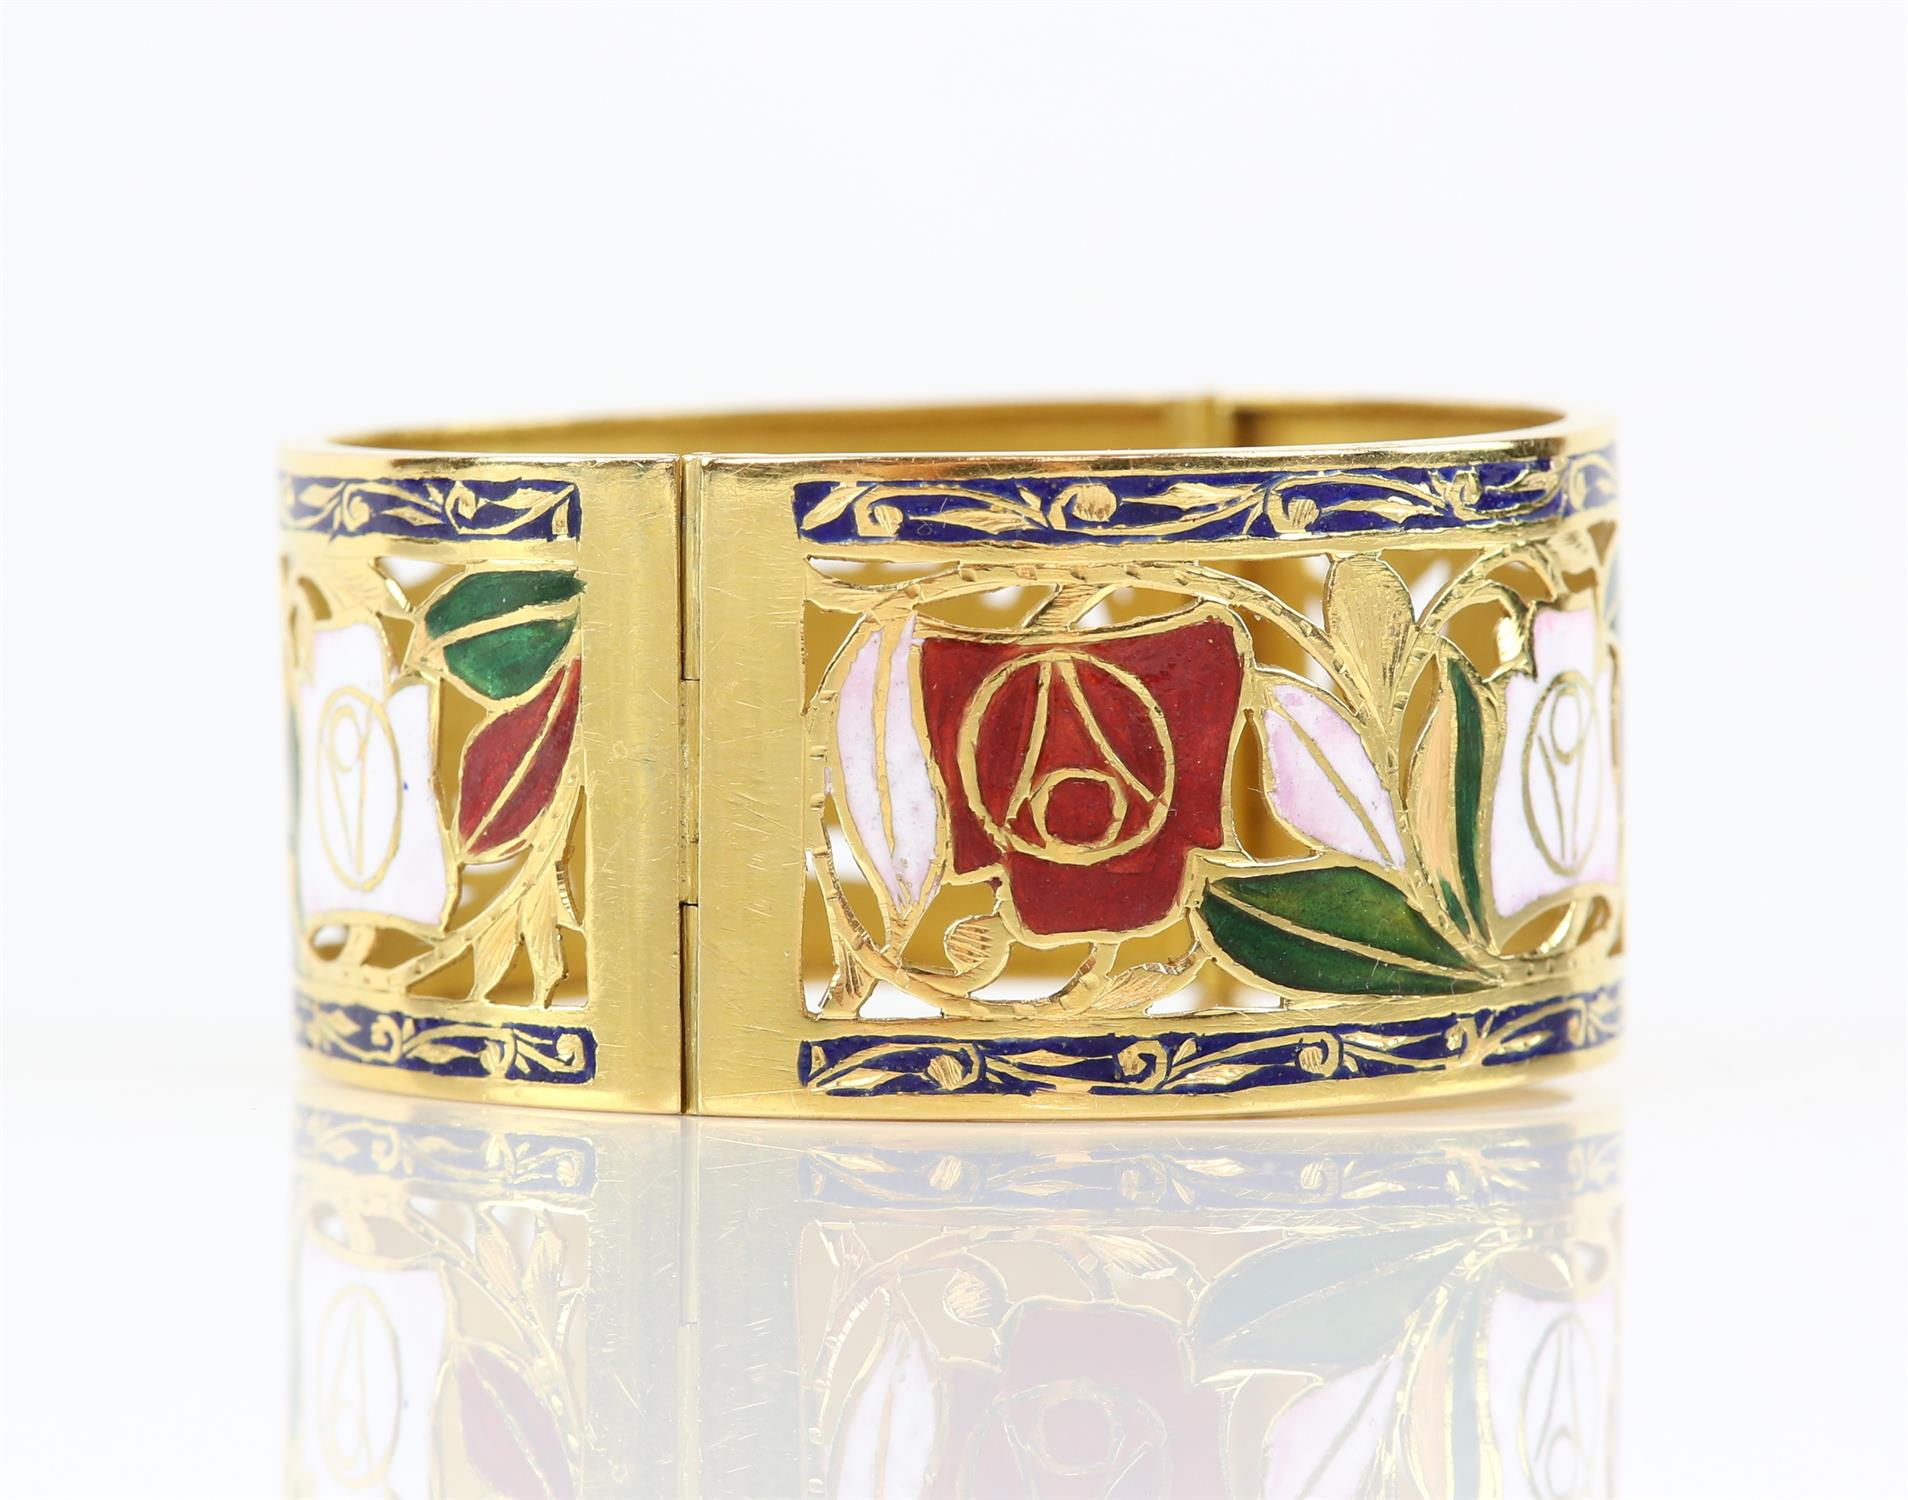 Enamel red and white rose gold pierced bangle, with enamel leaves and scrolled blue enamel borders, - Image 3 of 7